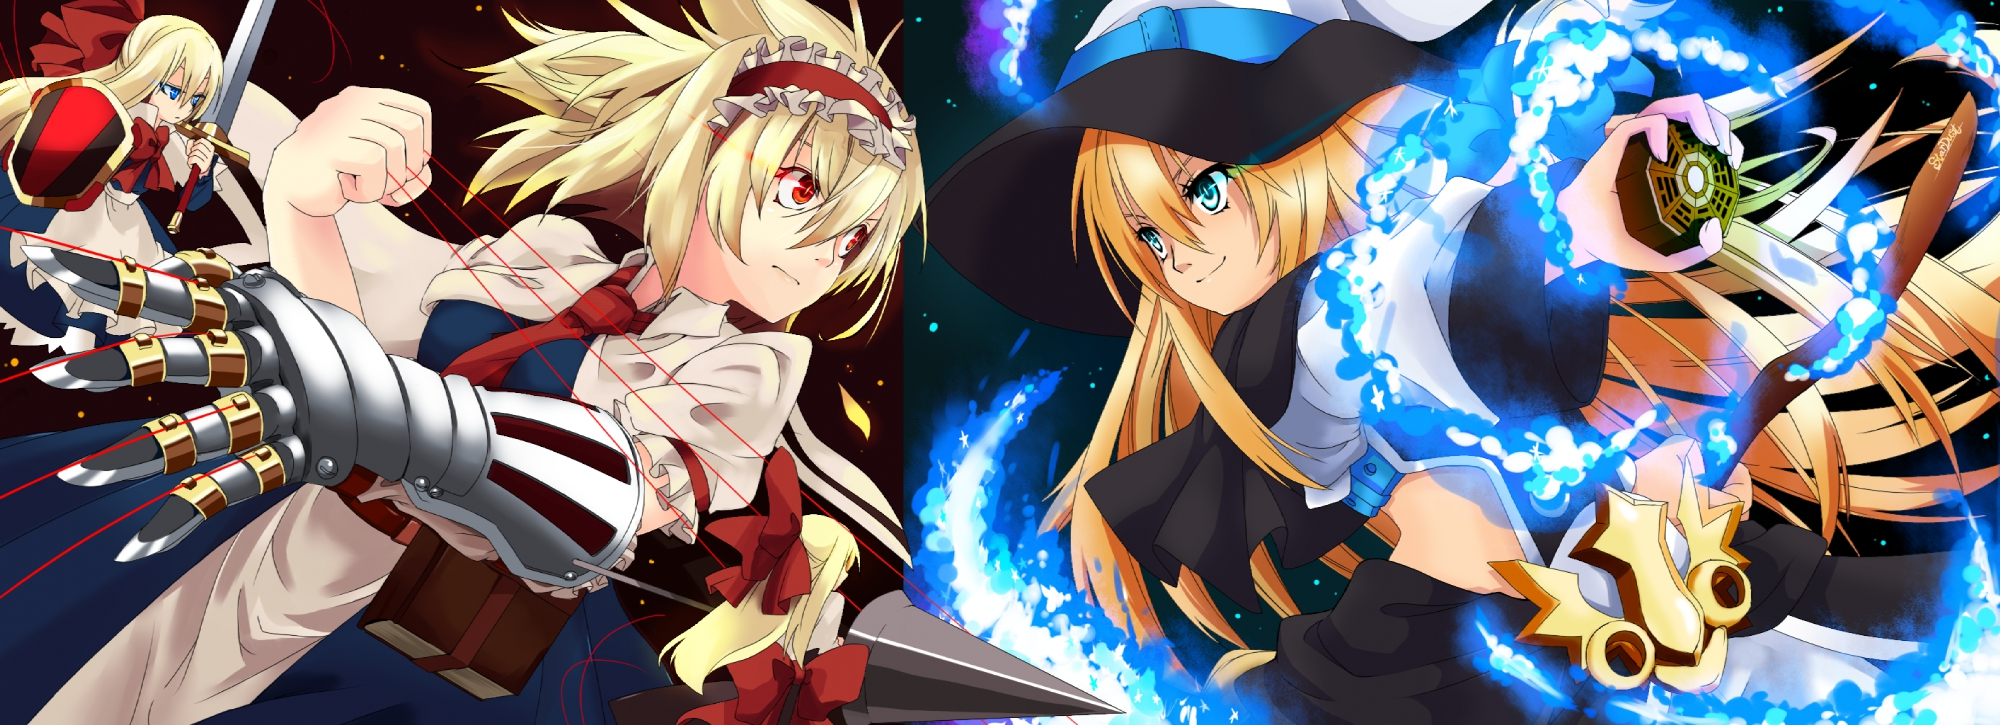 alice_margatroid armor blonde_hair blue_eyes book bow doll dress dualscreen gloves hat headdress kirisame_marisa long_hair mage magic red_eyes shanghai_doll shijimi-sama short_hair spear sword tie touhou weapon witch